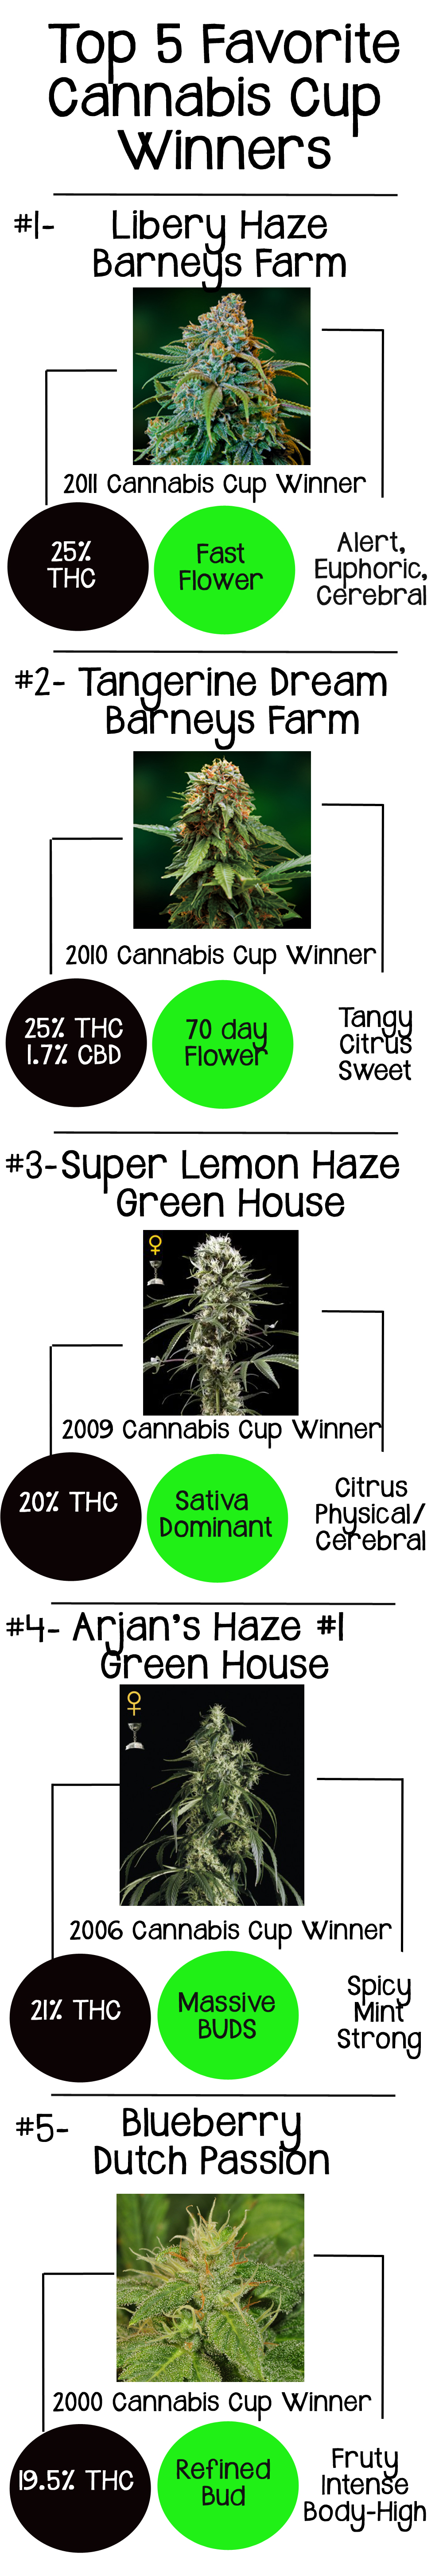 Top 5 Cannabis Cup Winners